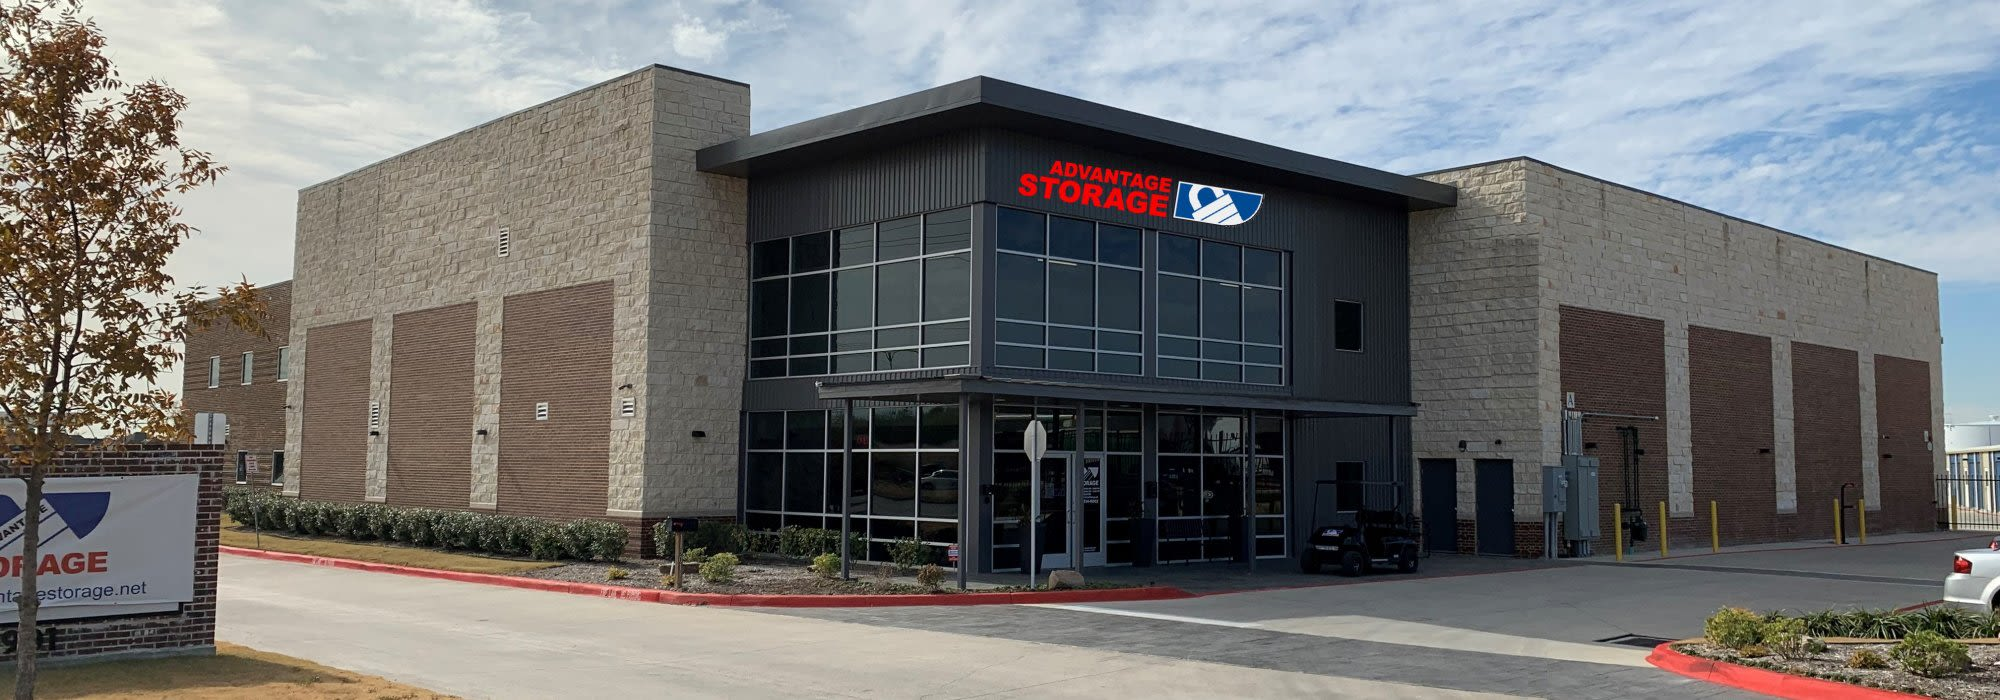 Self storage in Little Elm, Texas